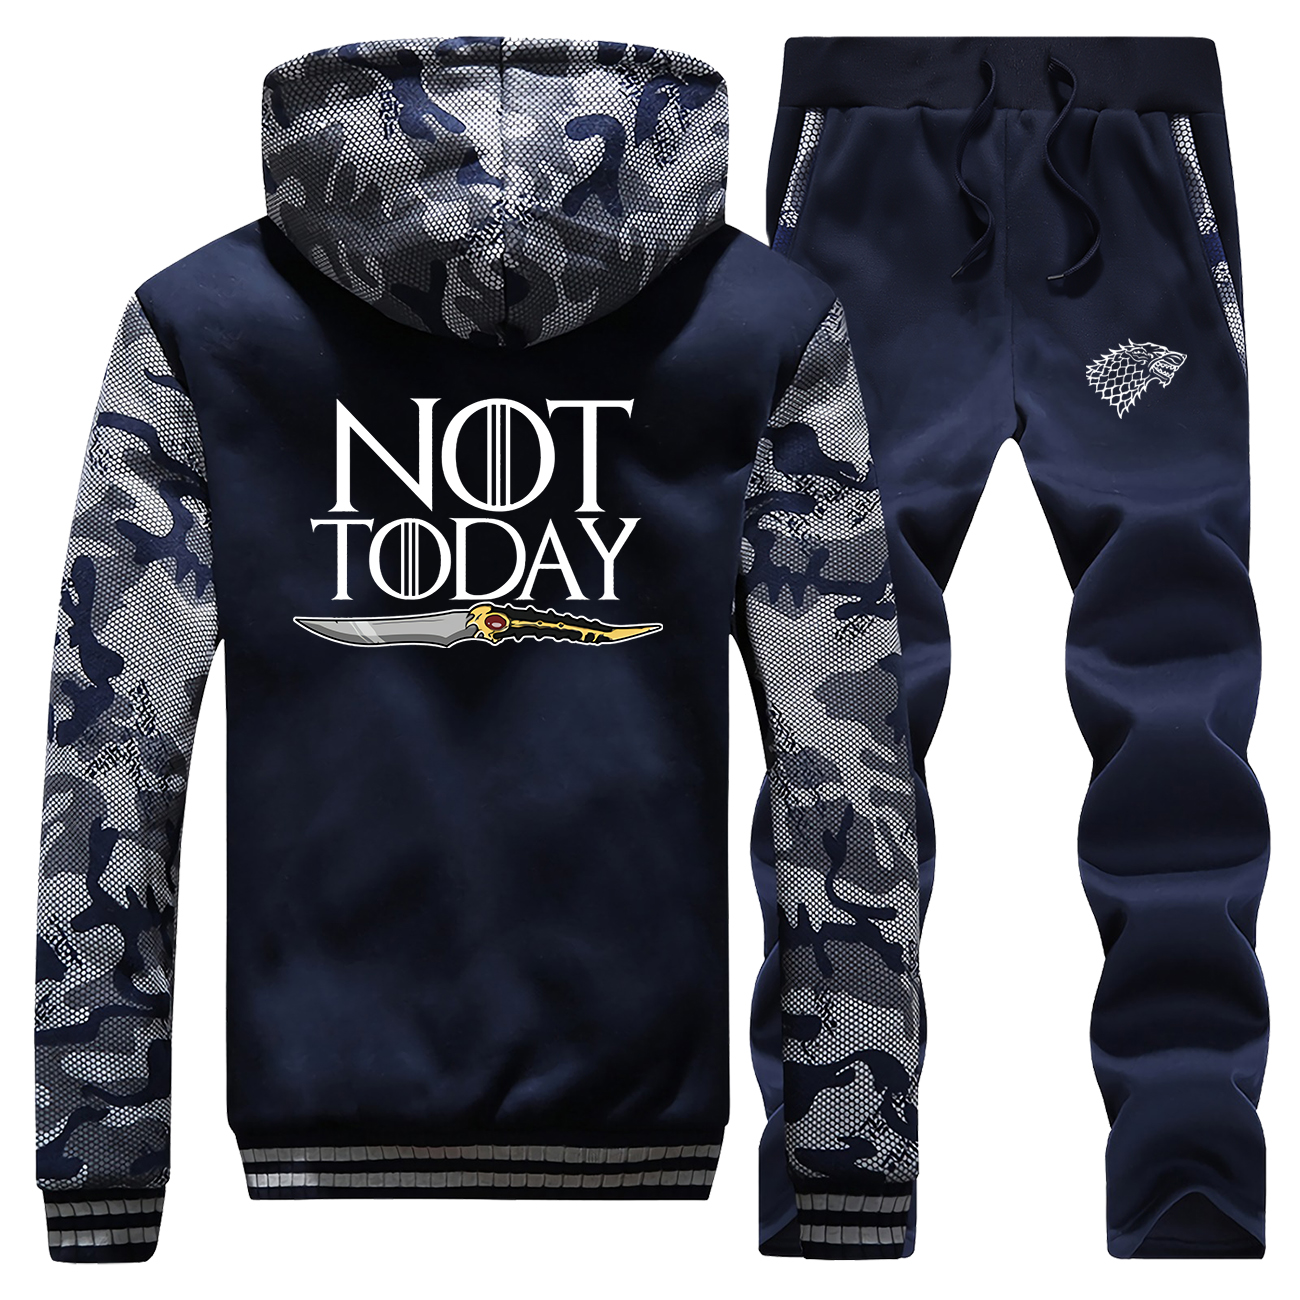 Game Of Thrones Winter Warm Jackets Fashion Camo Male Set Not Today Pants Sweatshirt Arya Stark Fleece Fitness Two Piece Sets